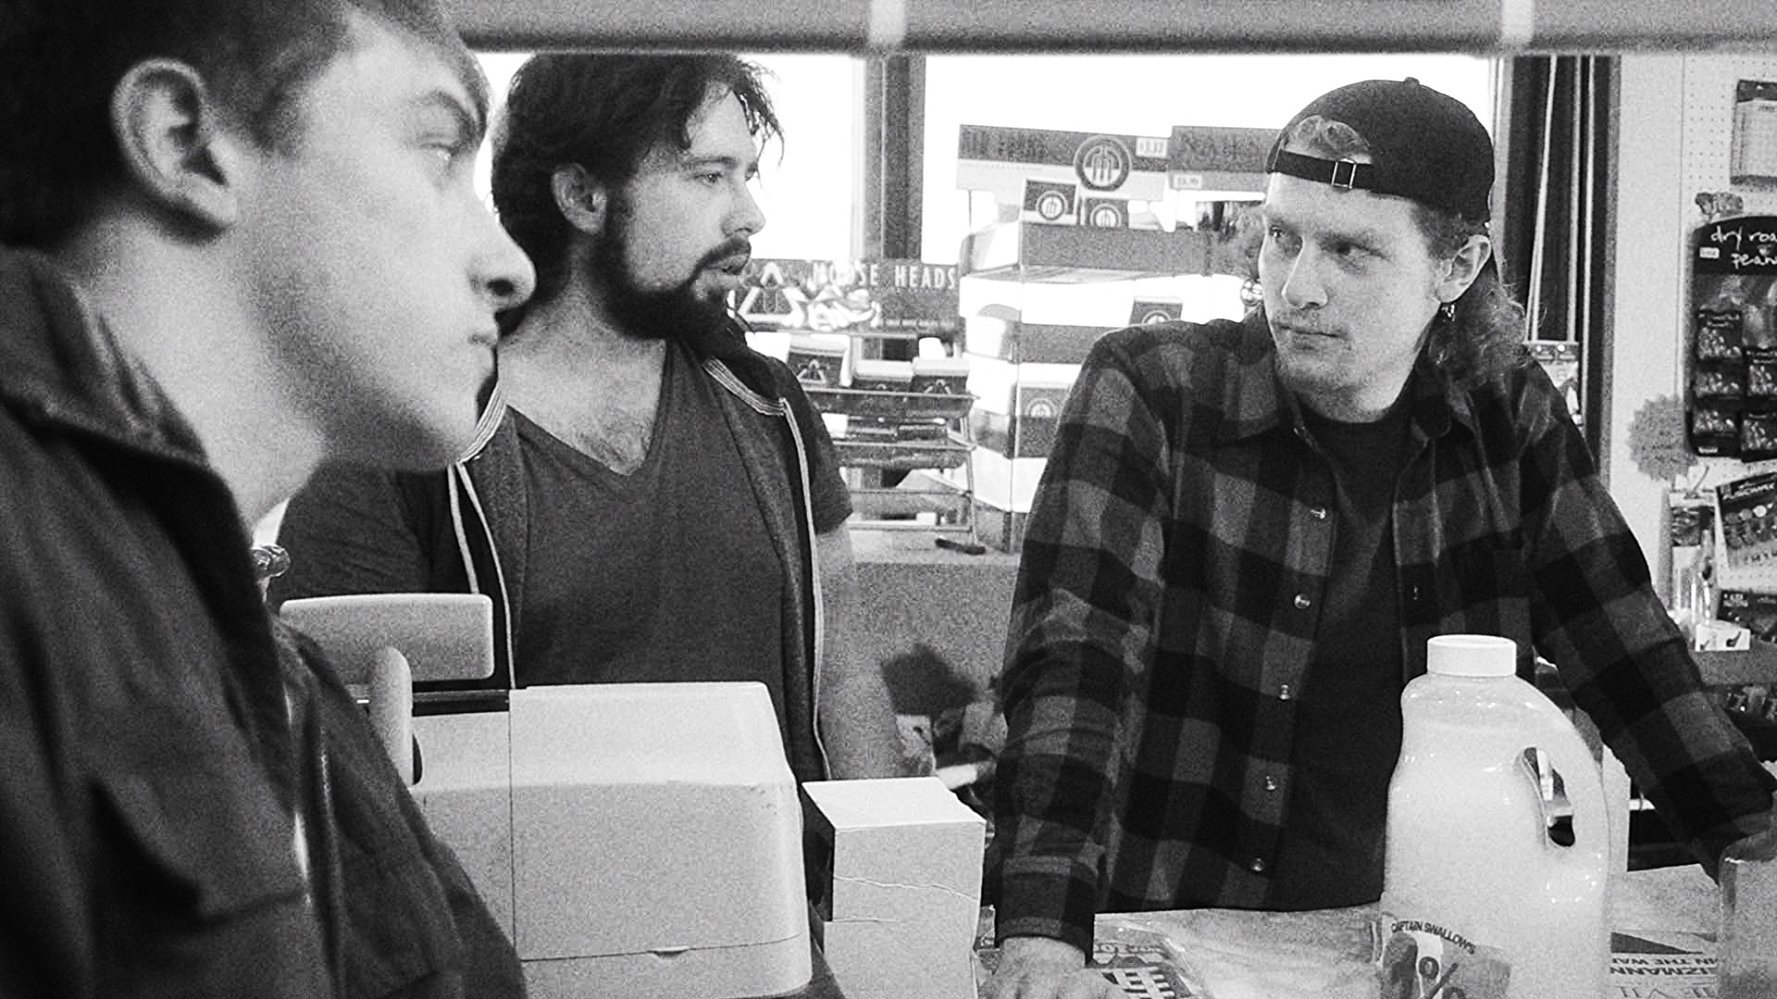 A scene from Shooting Clerks.